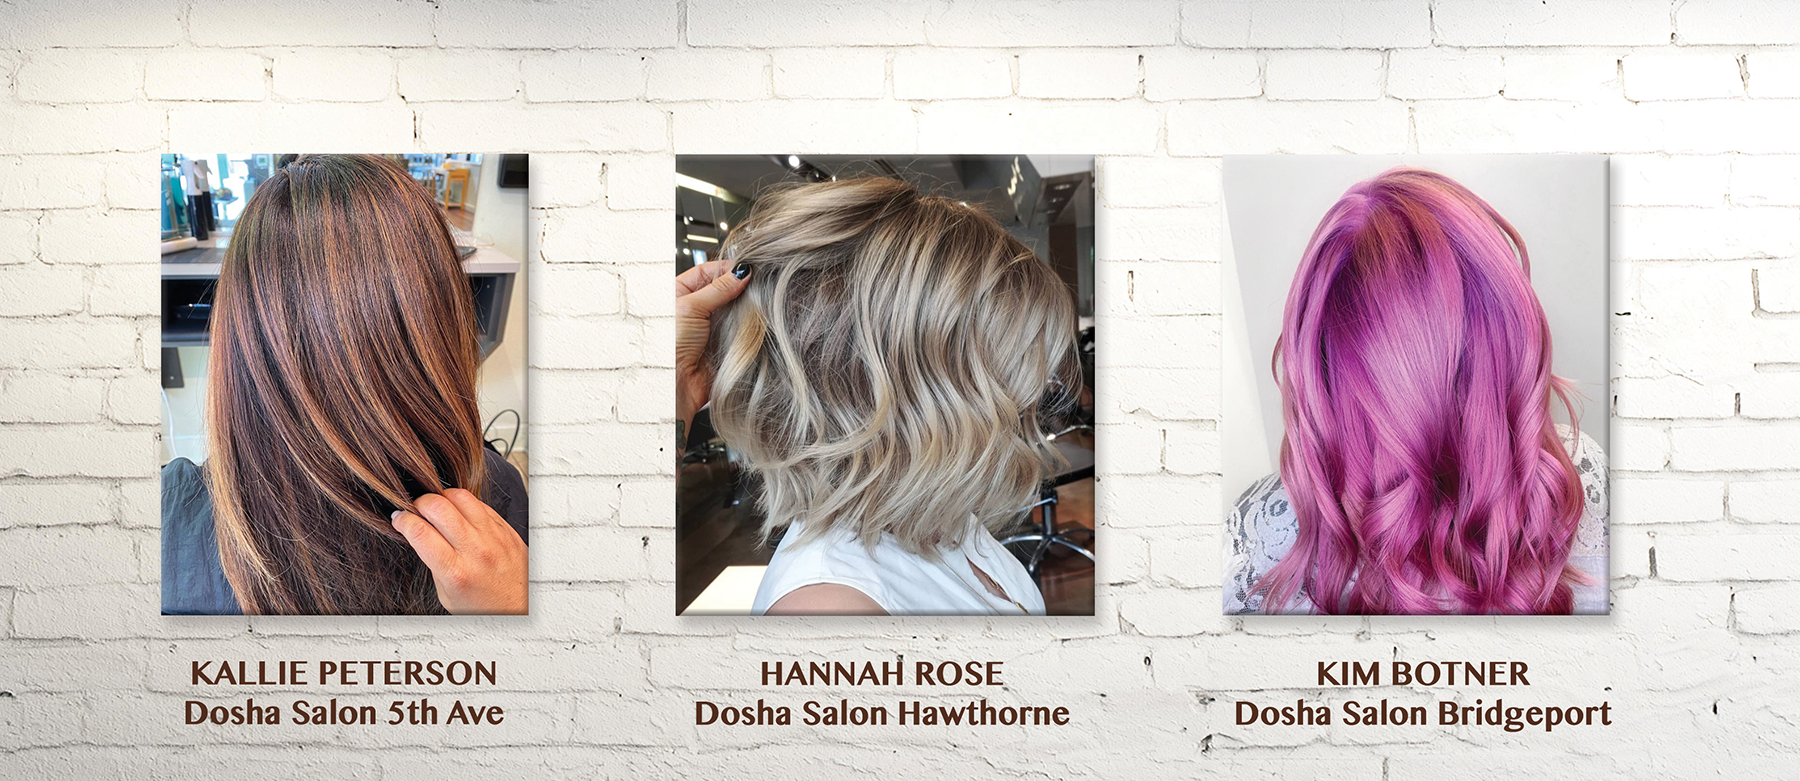 Dosha Salon Spa Master Stylists